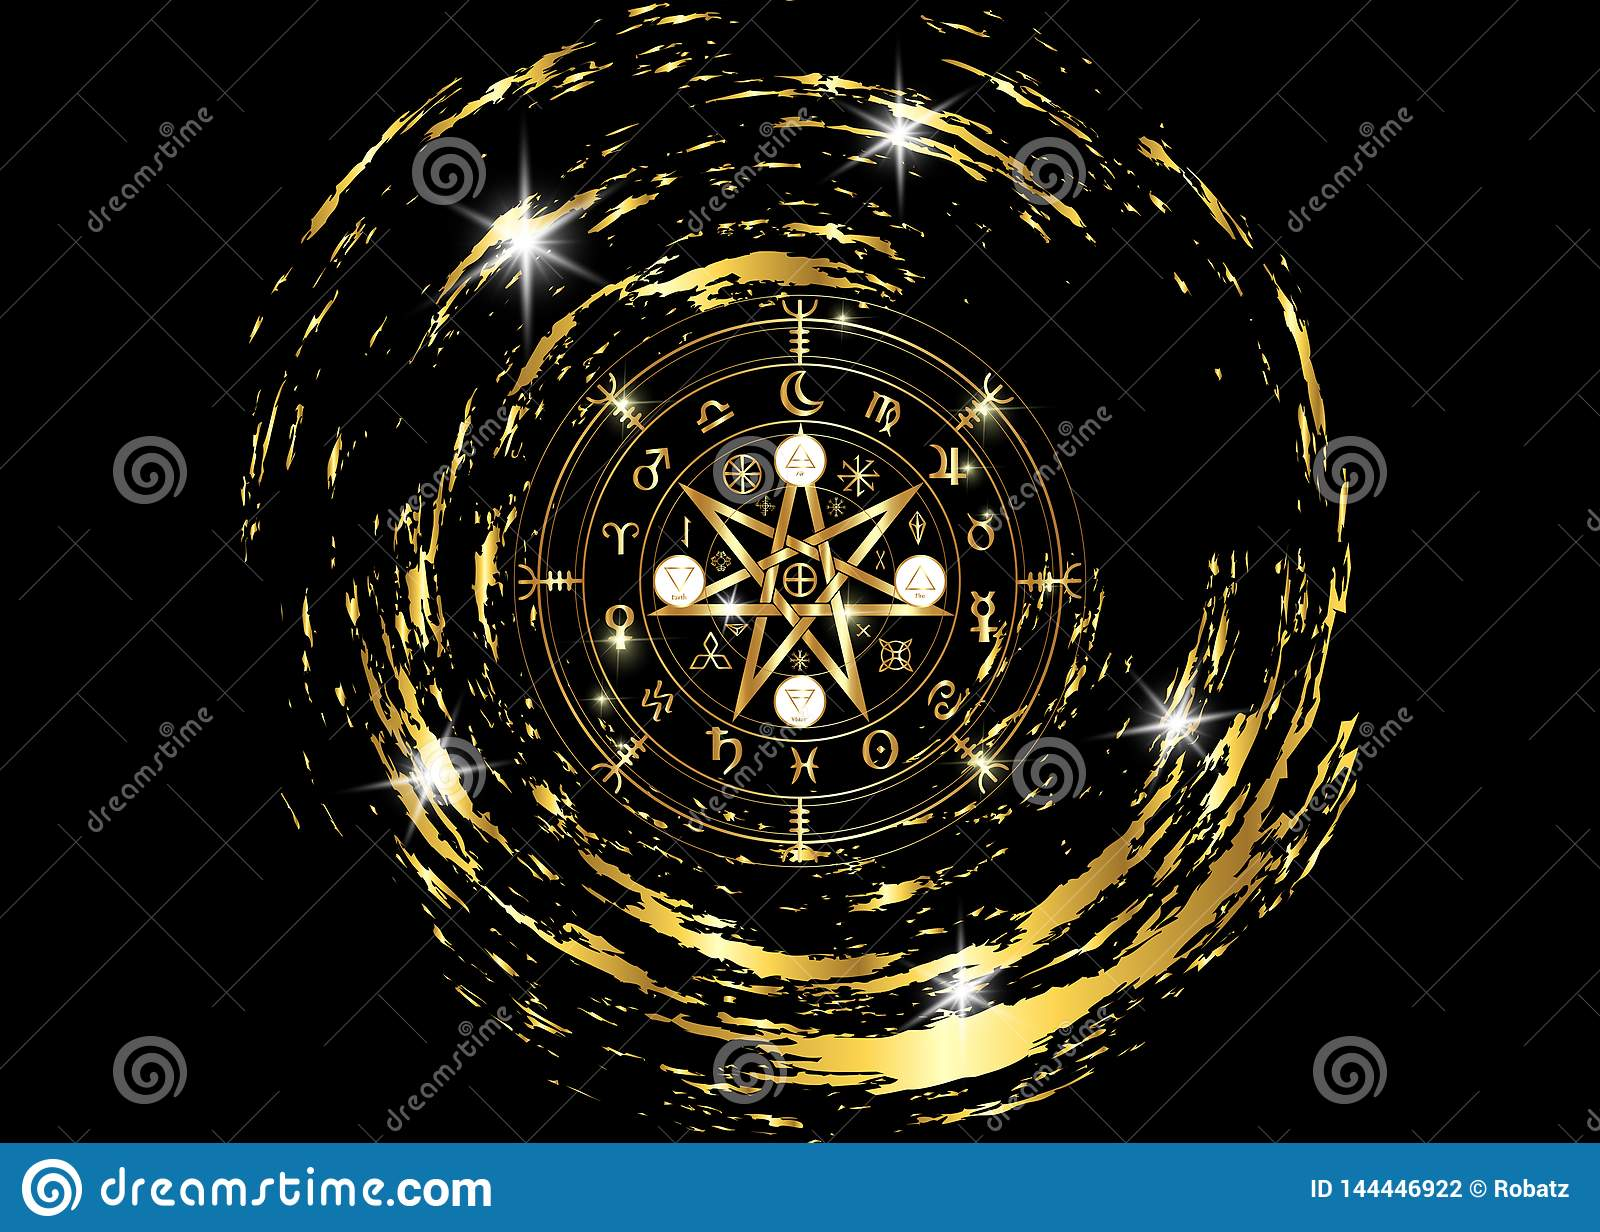 Wiccan symbol of protection. Gold Mandala Witches runes, Mystic Wicca divination. Ancient occult symbols, Earth Zodiac Wheel